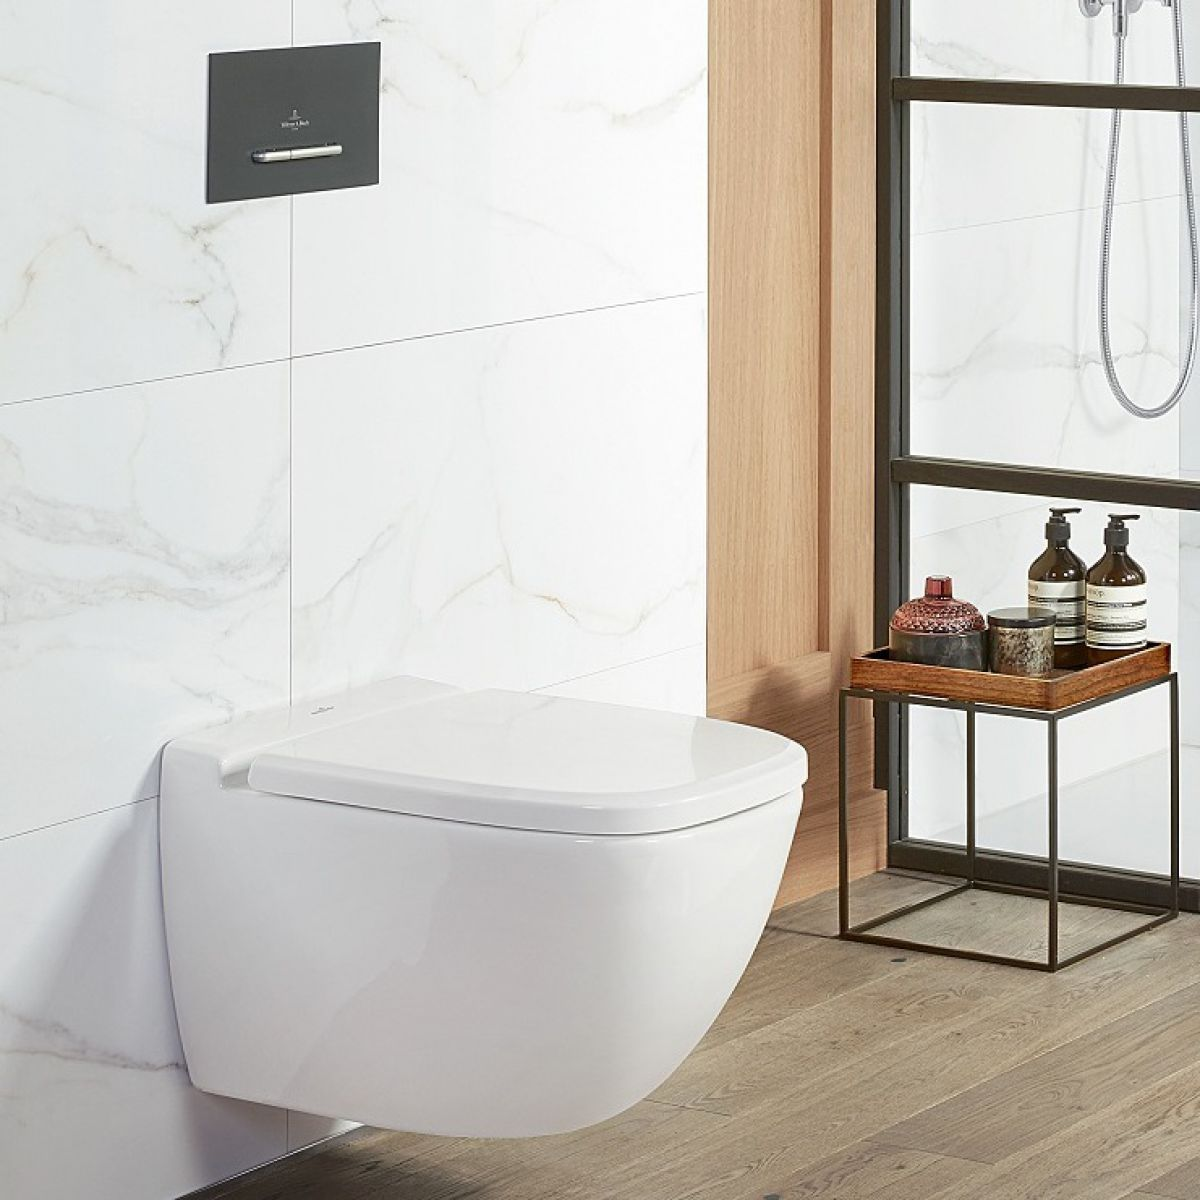 Villeroy And Boch Antheus Wall Hung Rimless Wc Guest Bathroom Small Wall Hung Toilet Toilet Installation